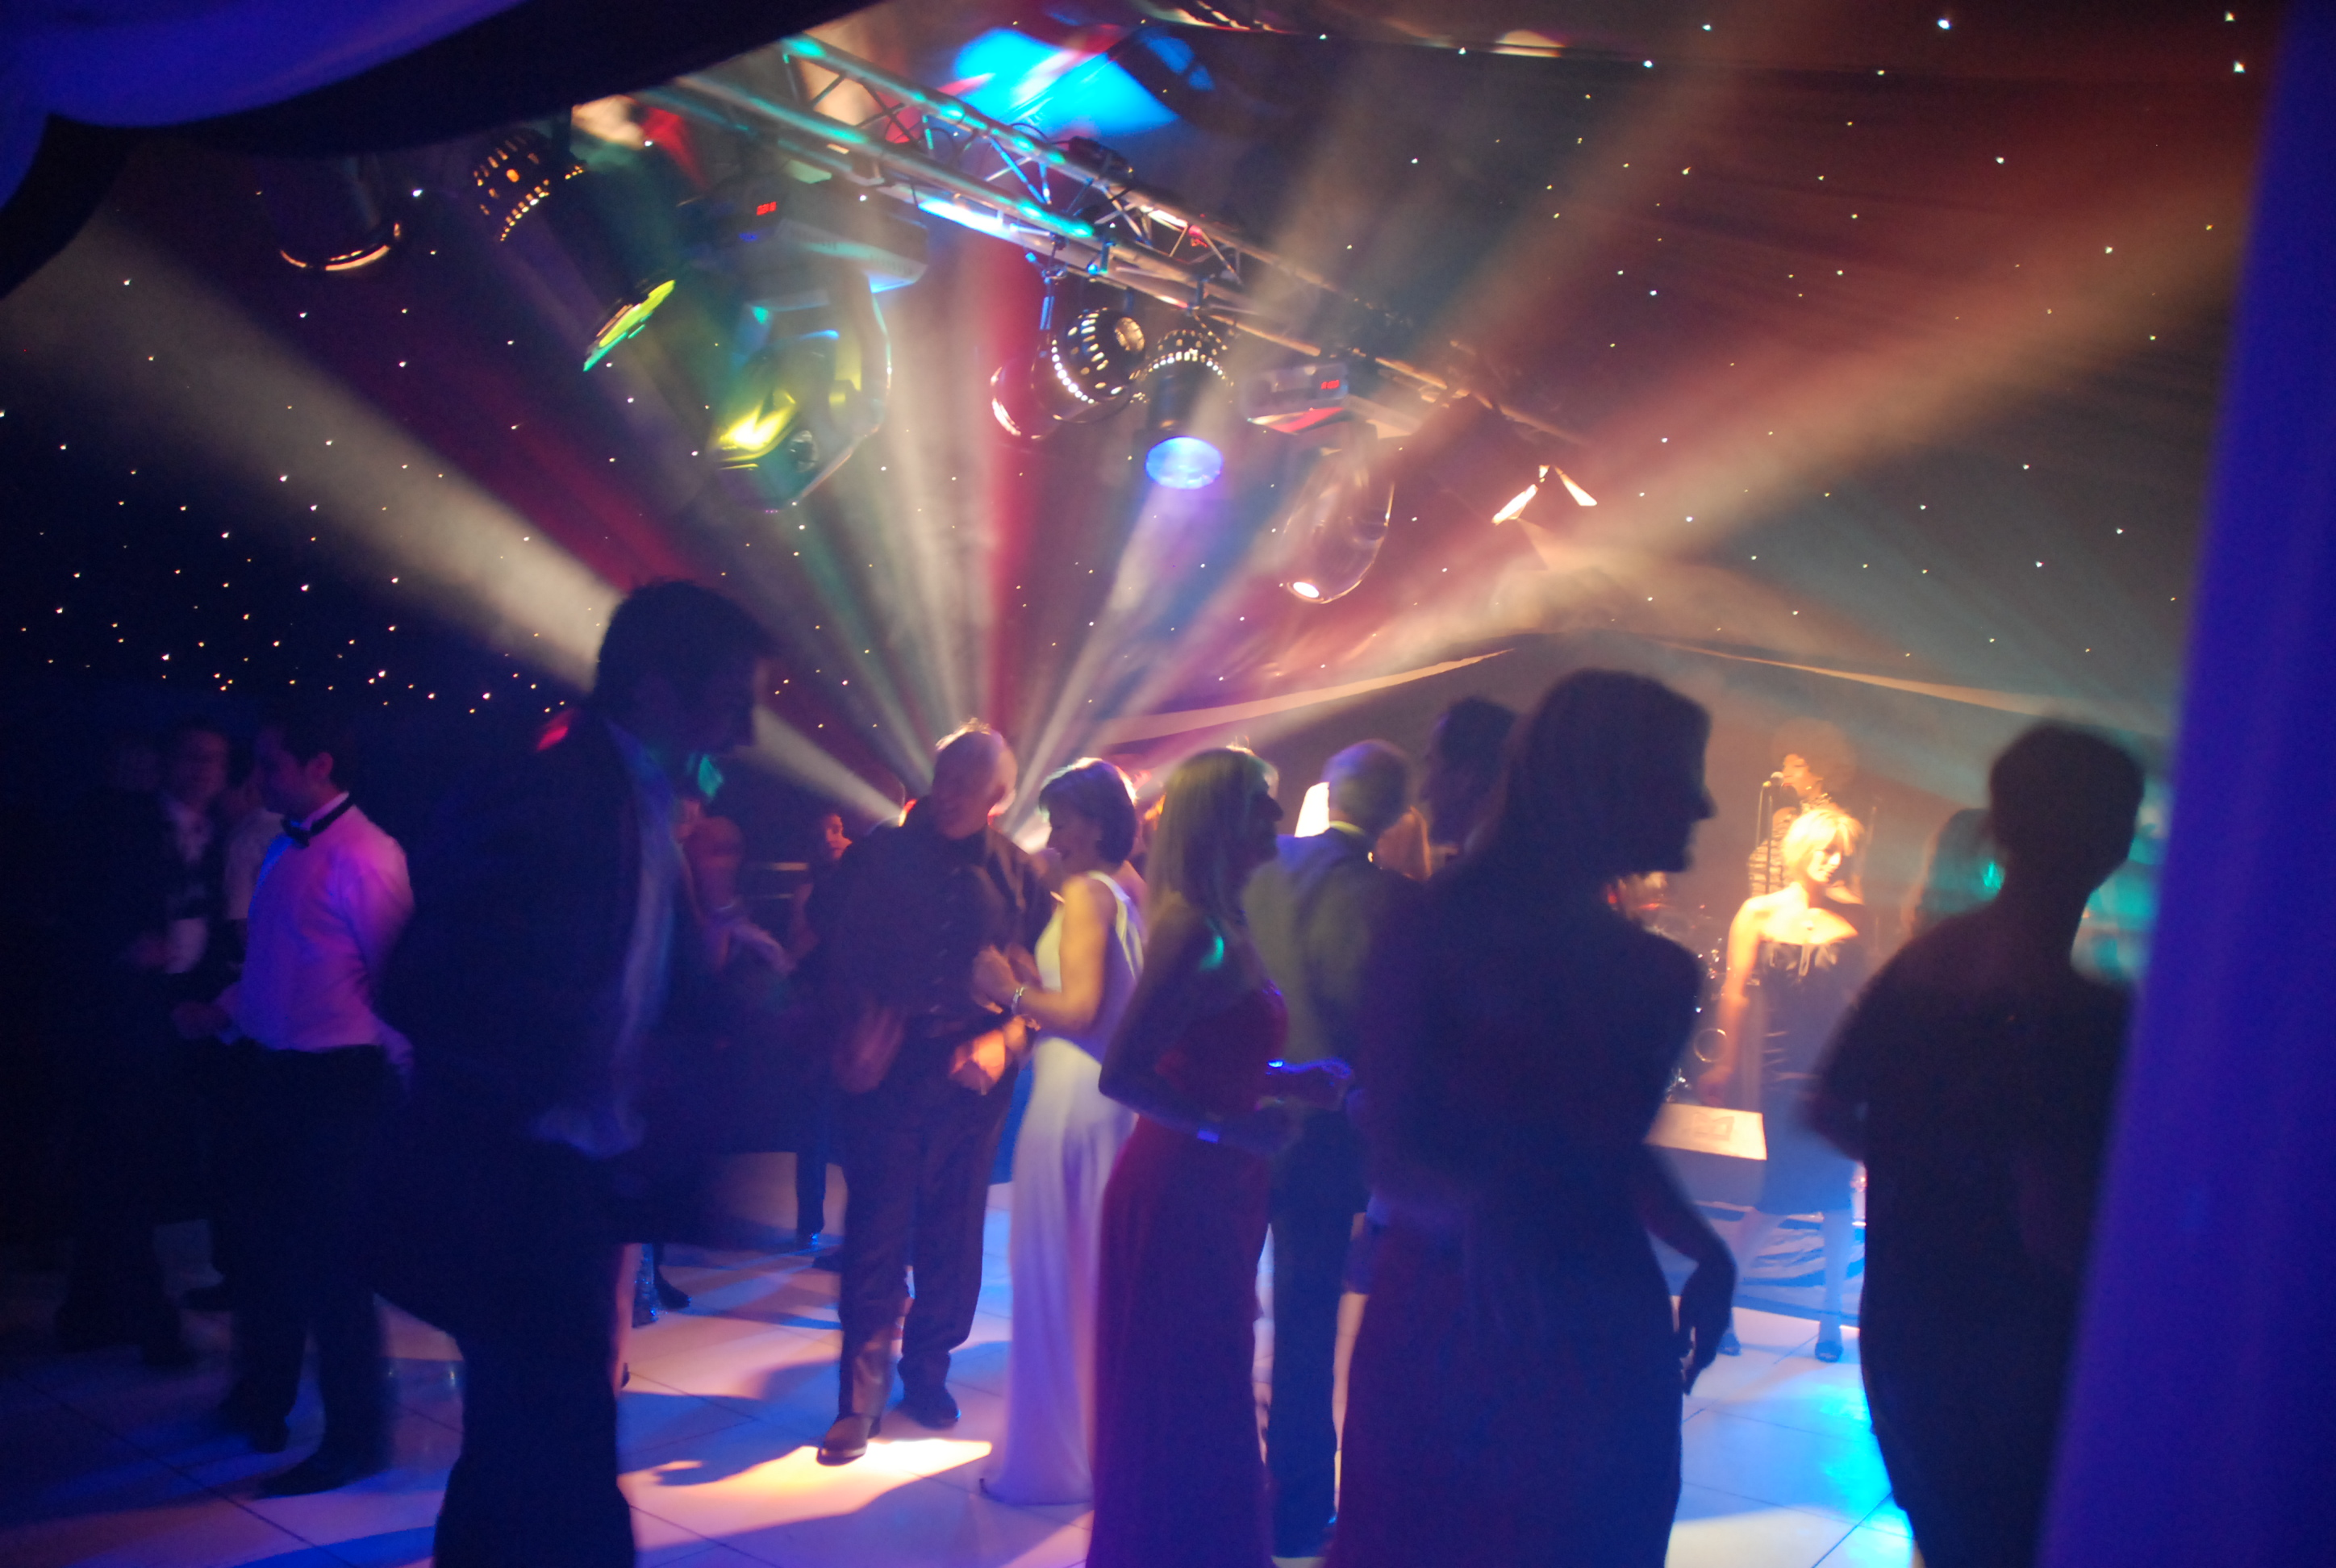 Private party, busy dance floor,